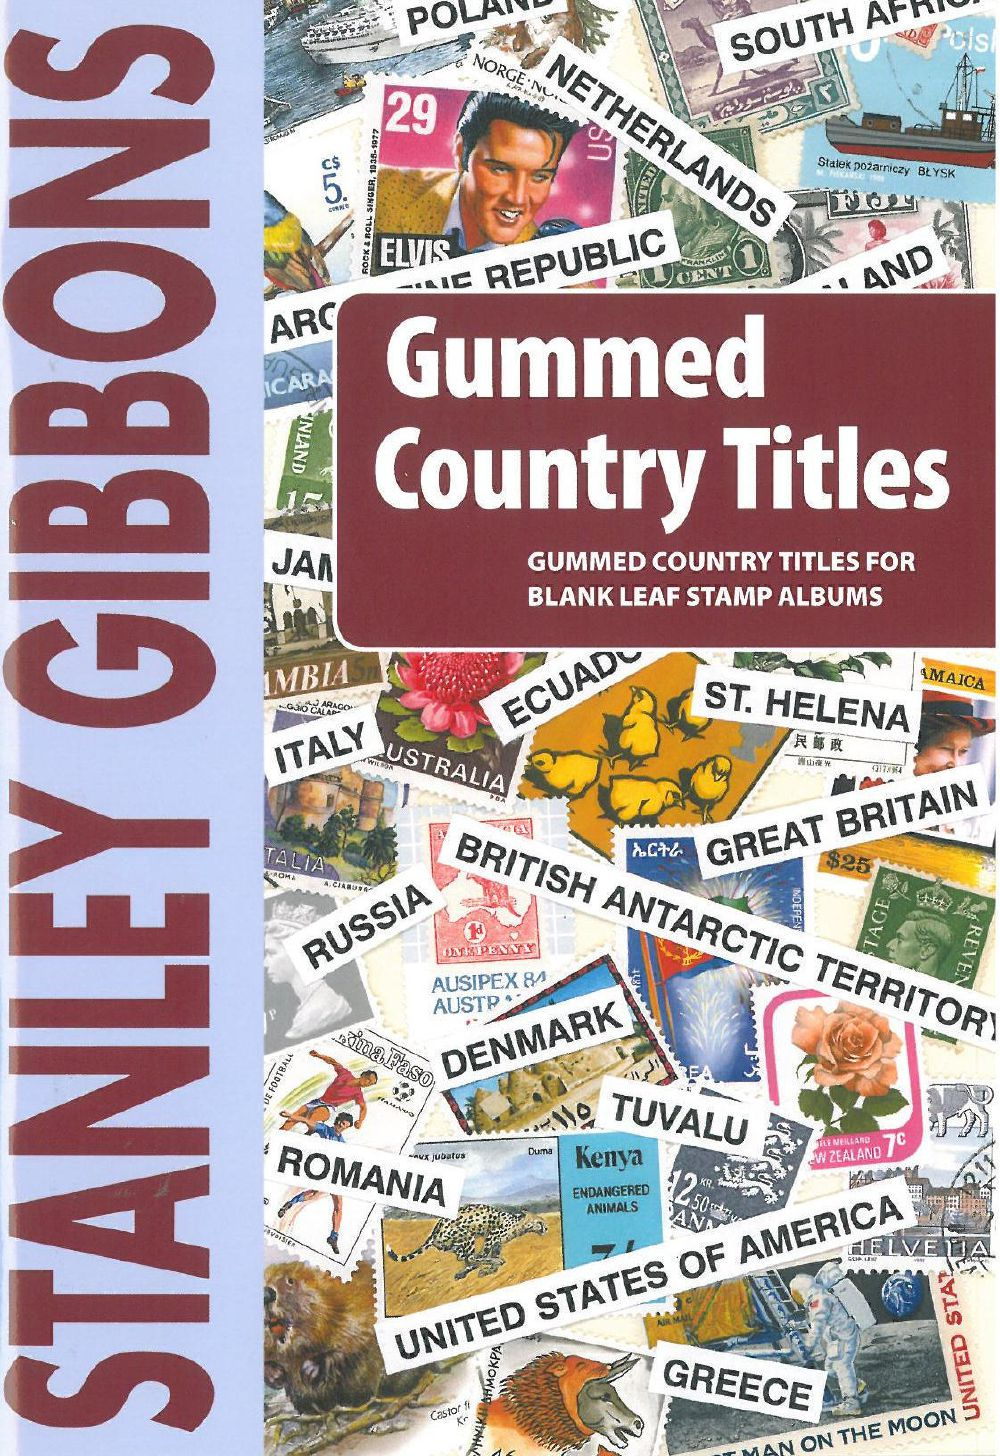 Gummed Country Titles